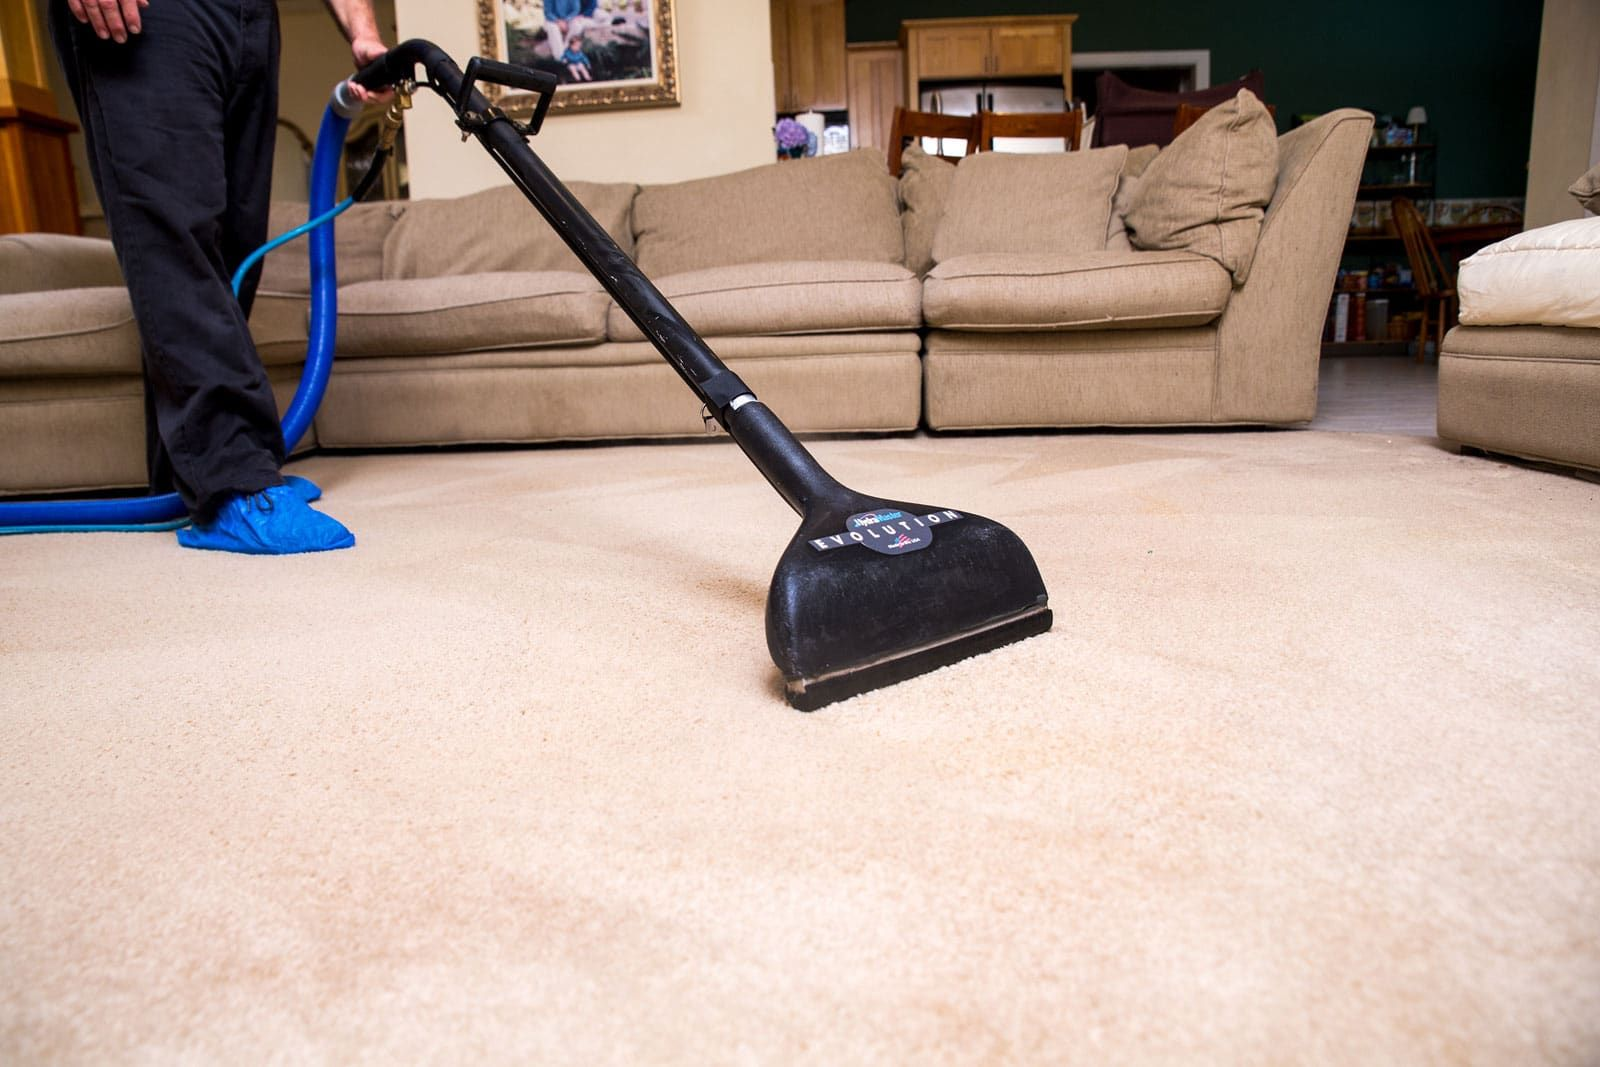 Best Carpet Cleaning Service In 2020 How To Clean Carpet Carpet Cleaning Service Commercial Carpet Cleaning